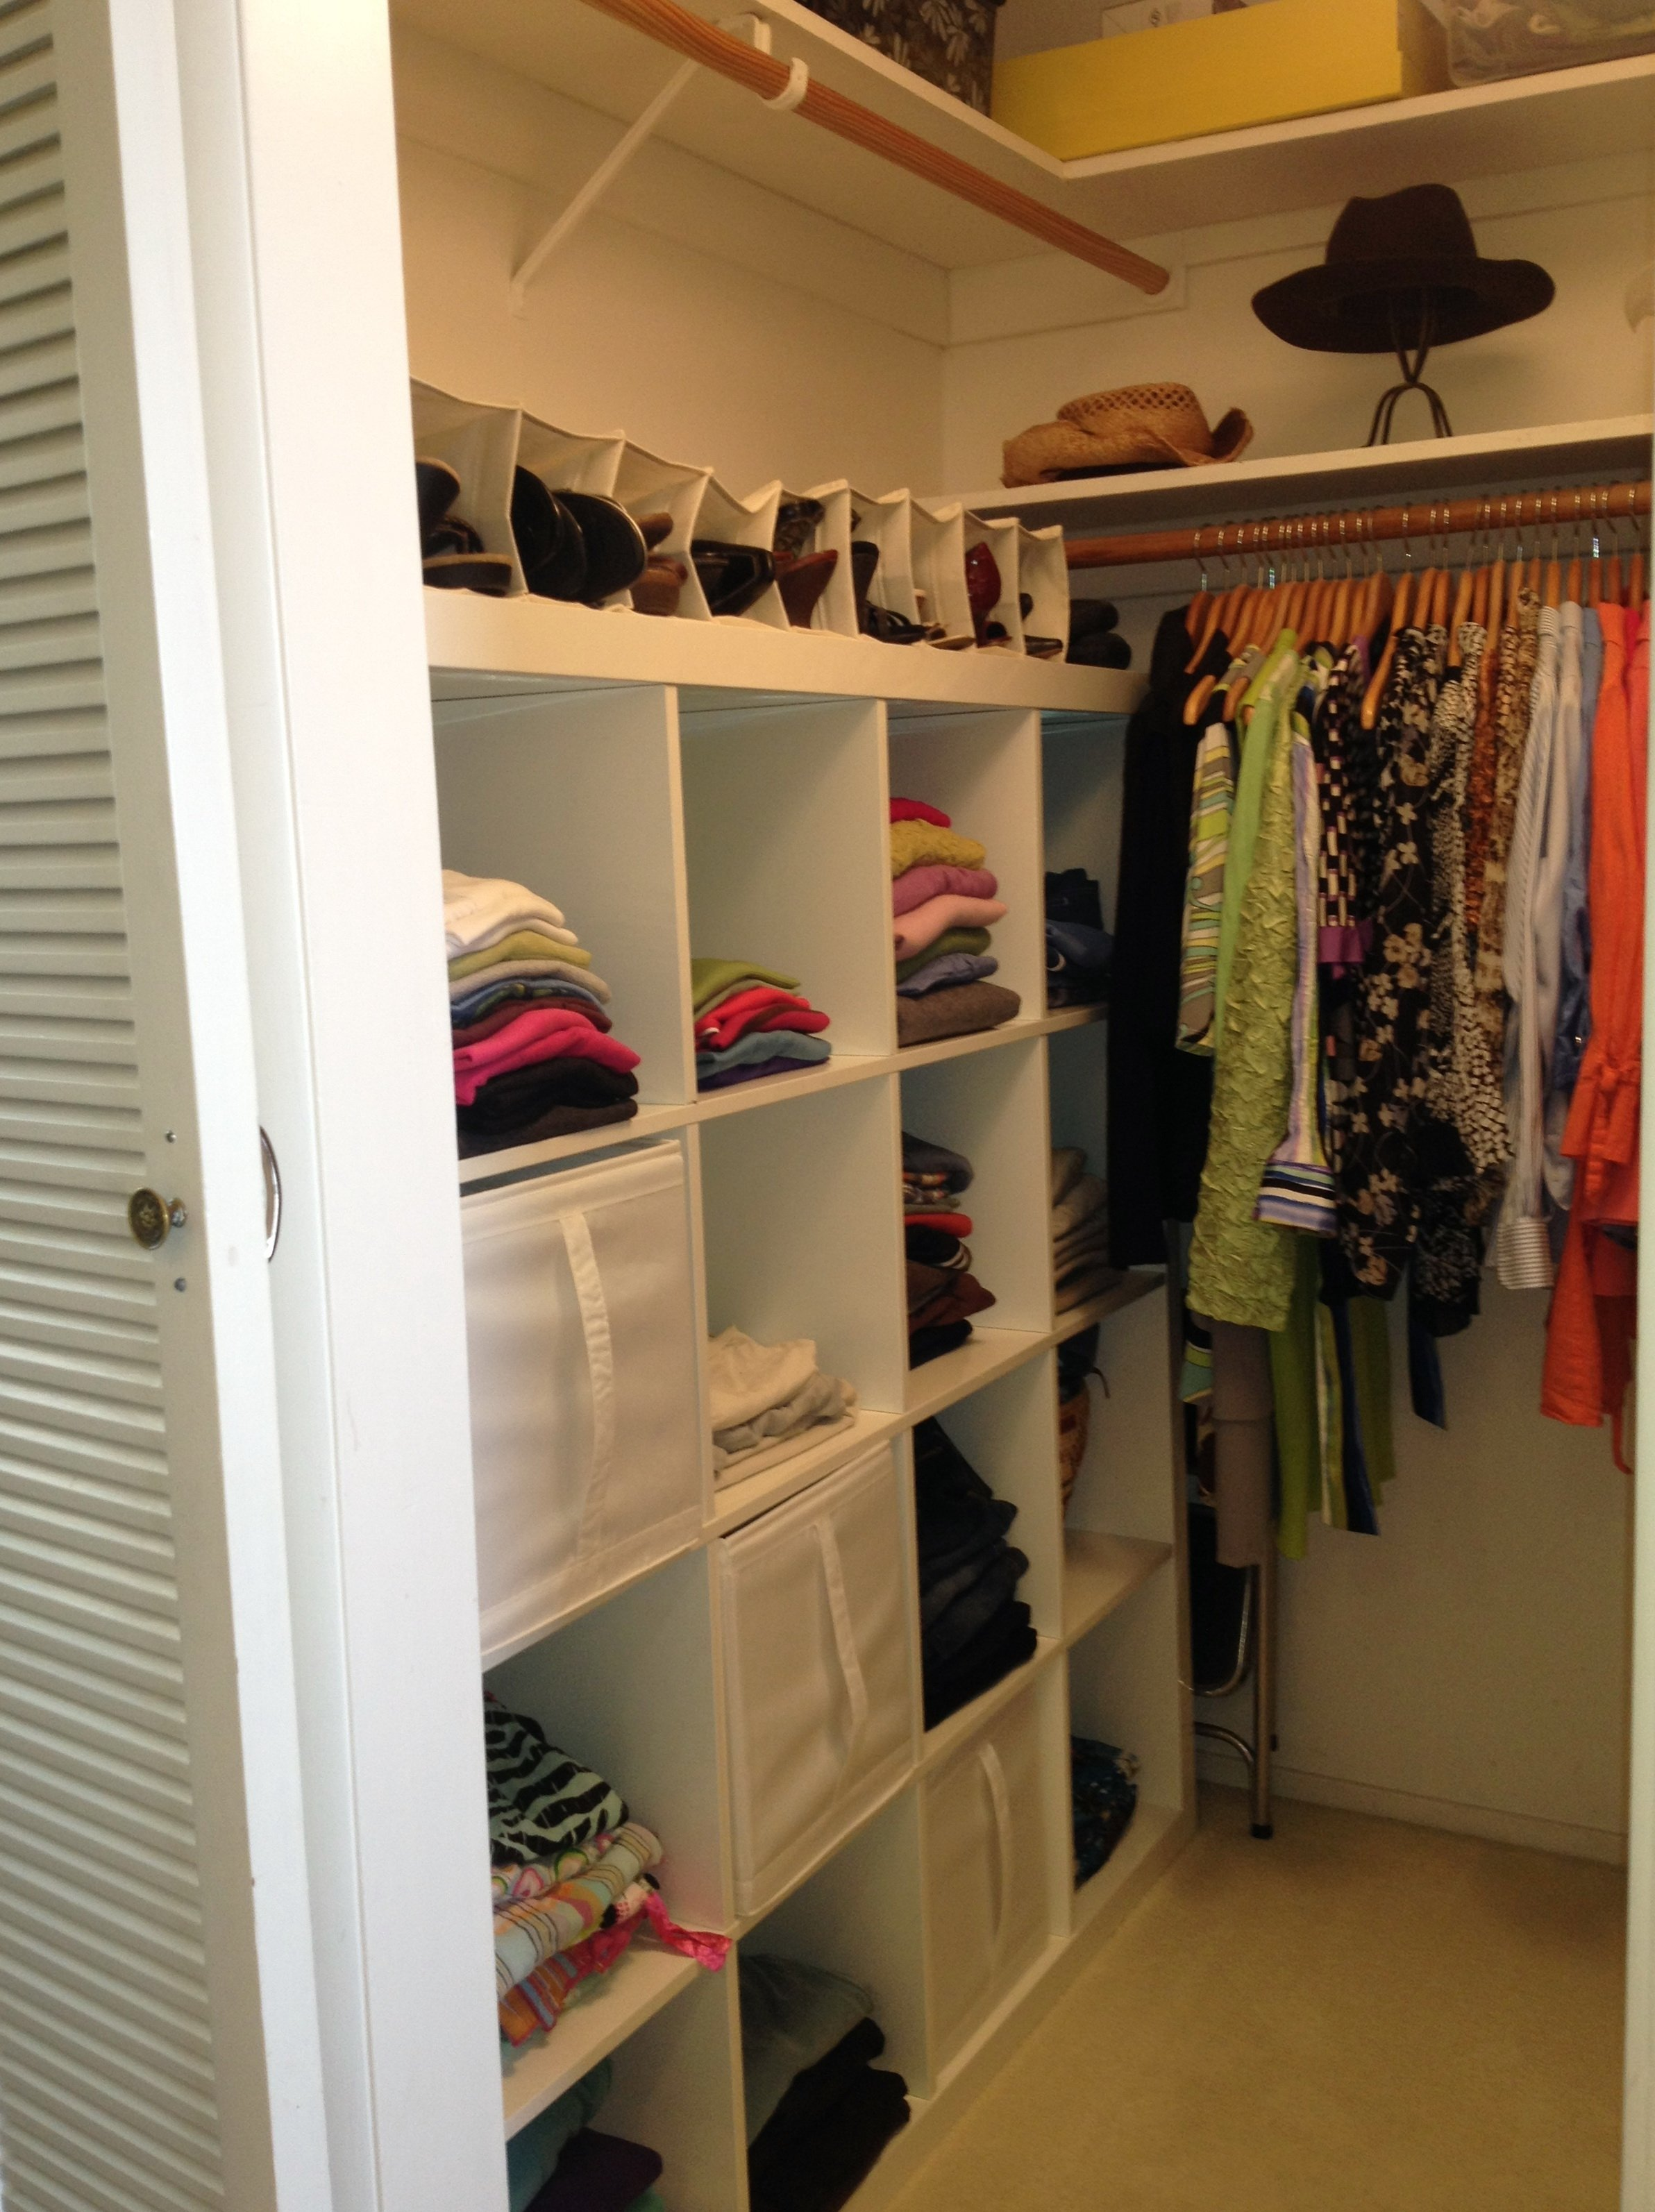 10 Fantastic Small Walk In Closet Design Ideas efficient walk in closet ideas for your house furniture image of